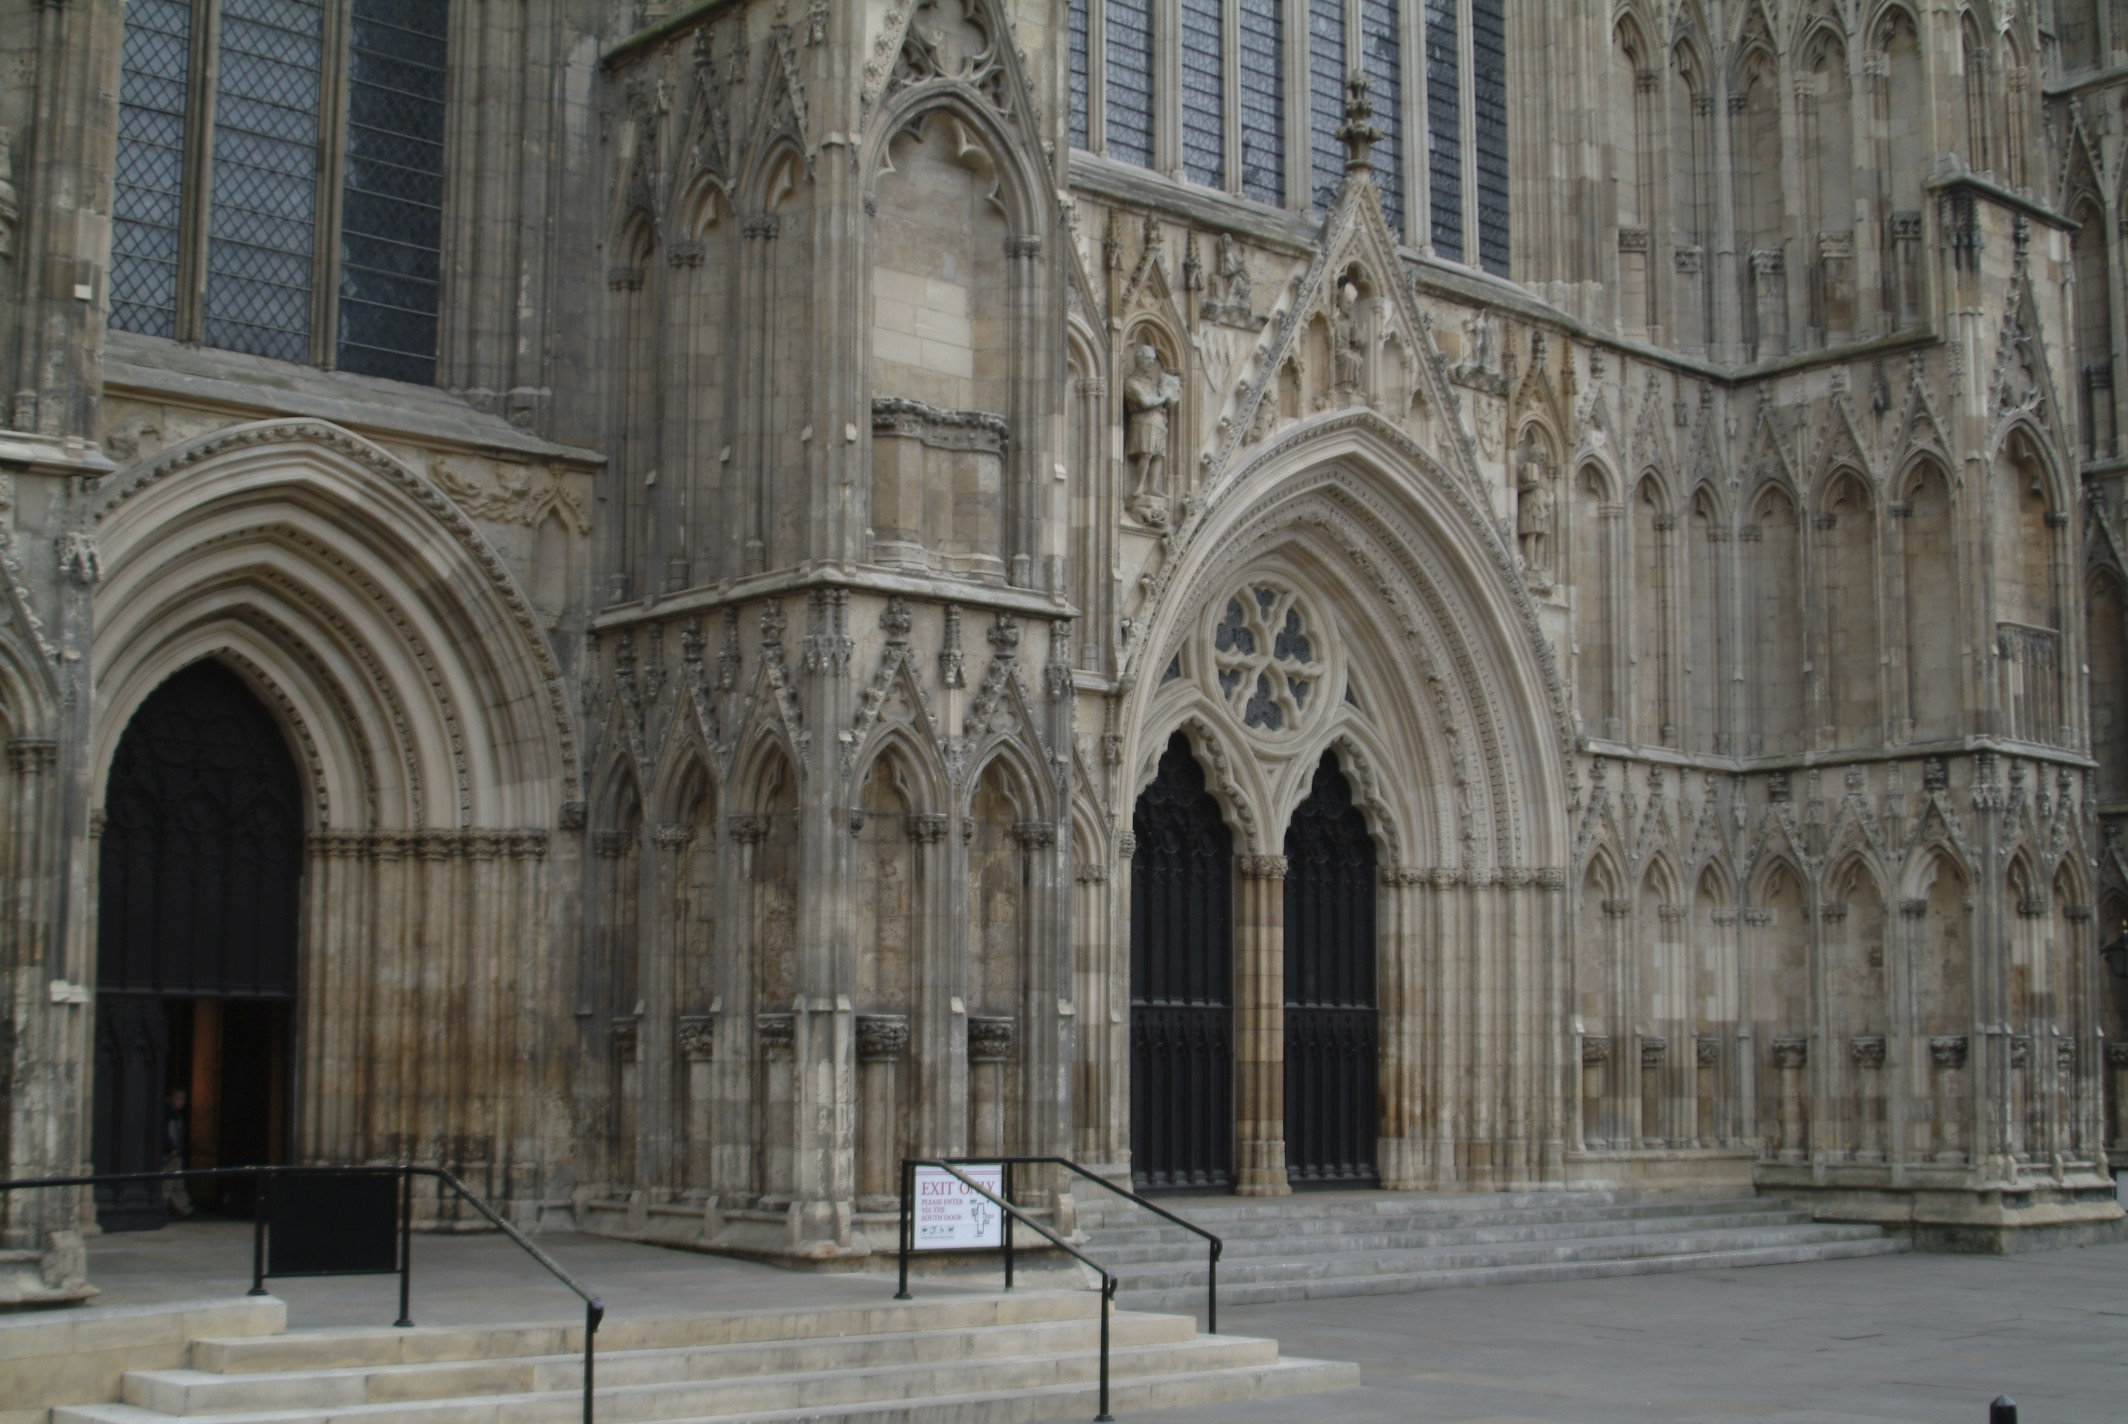 Entrance to the Minster